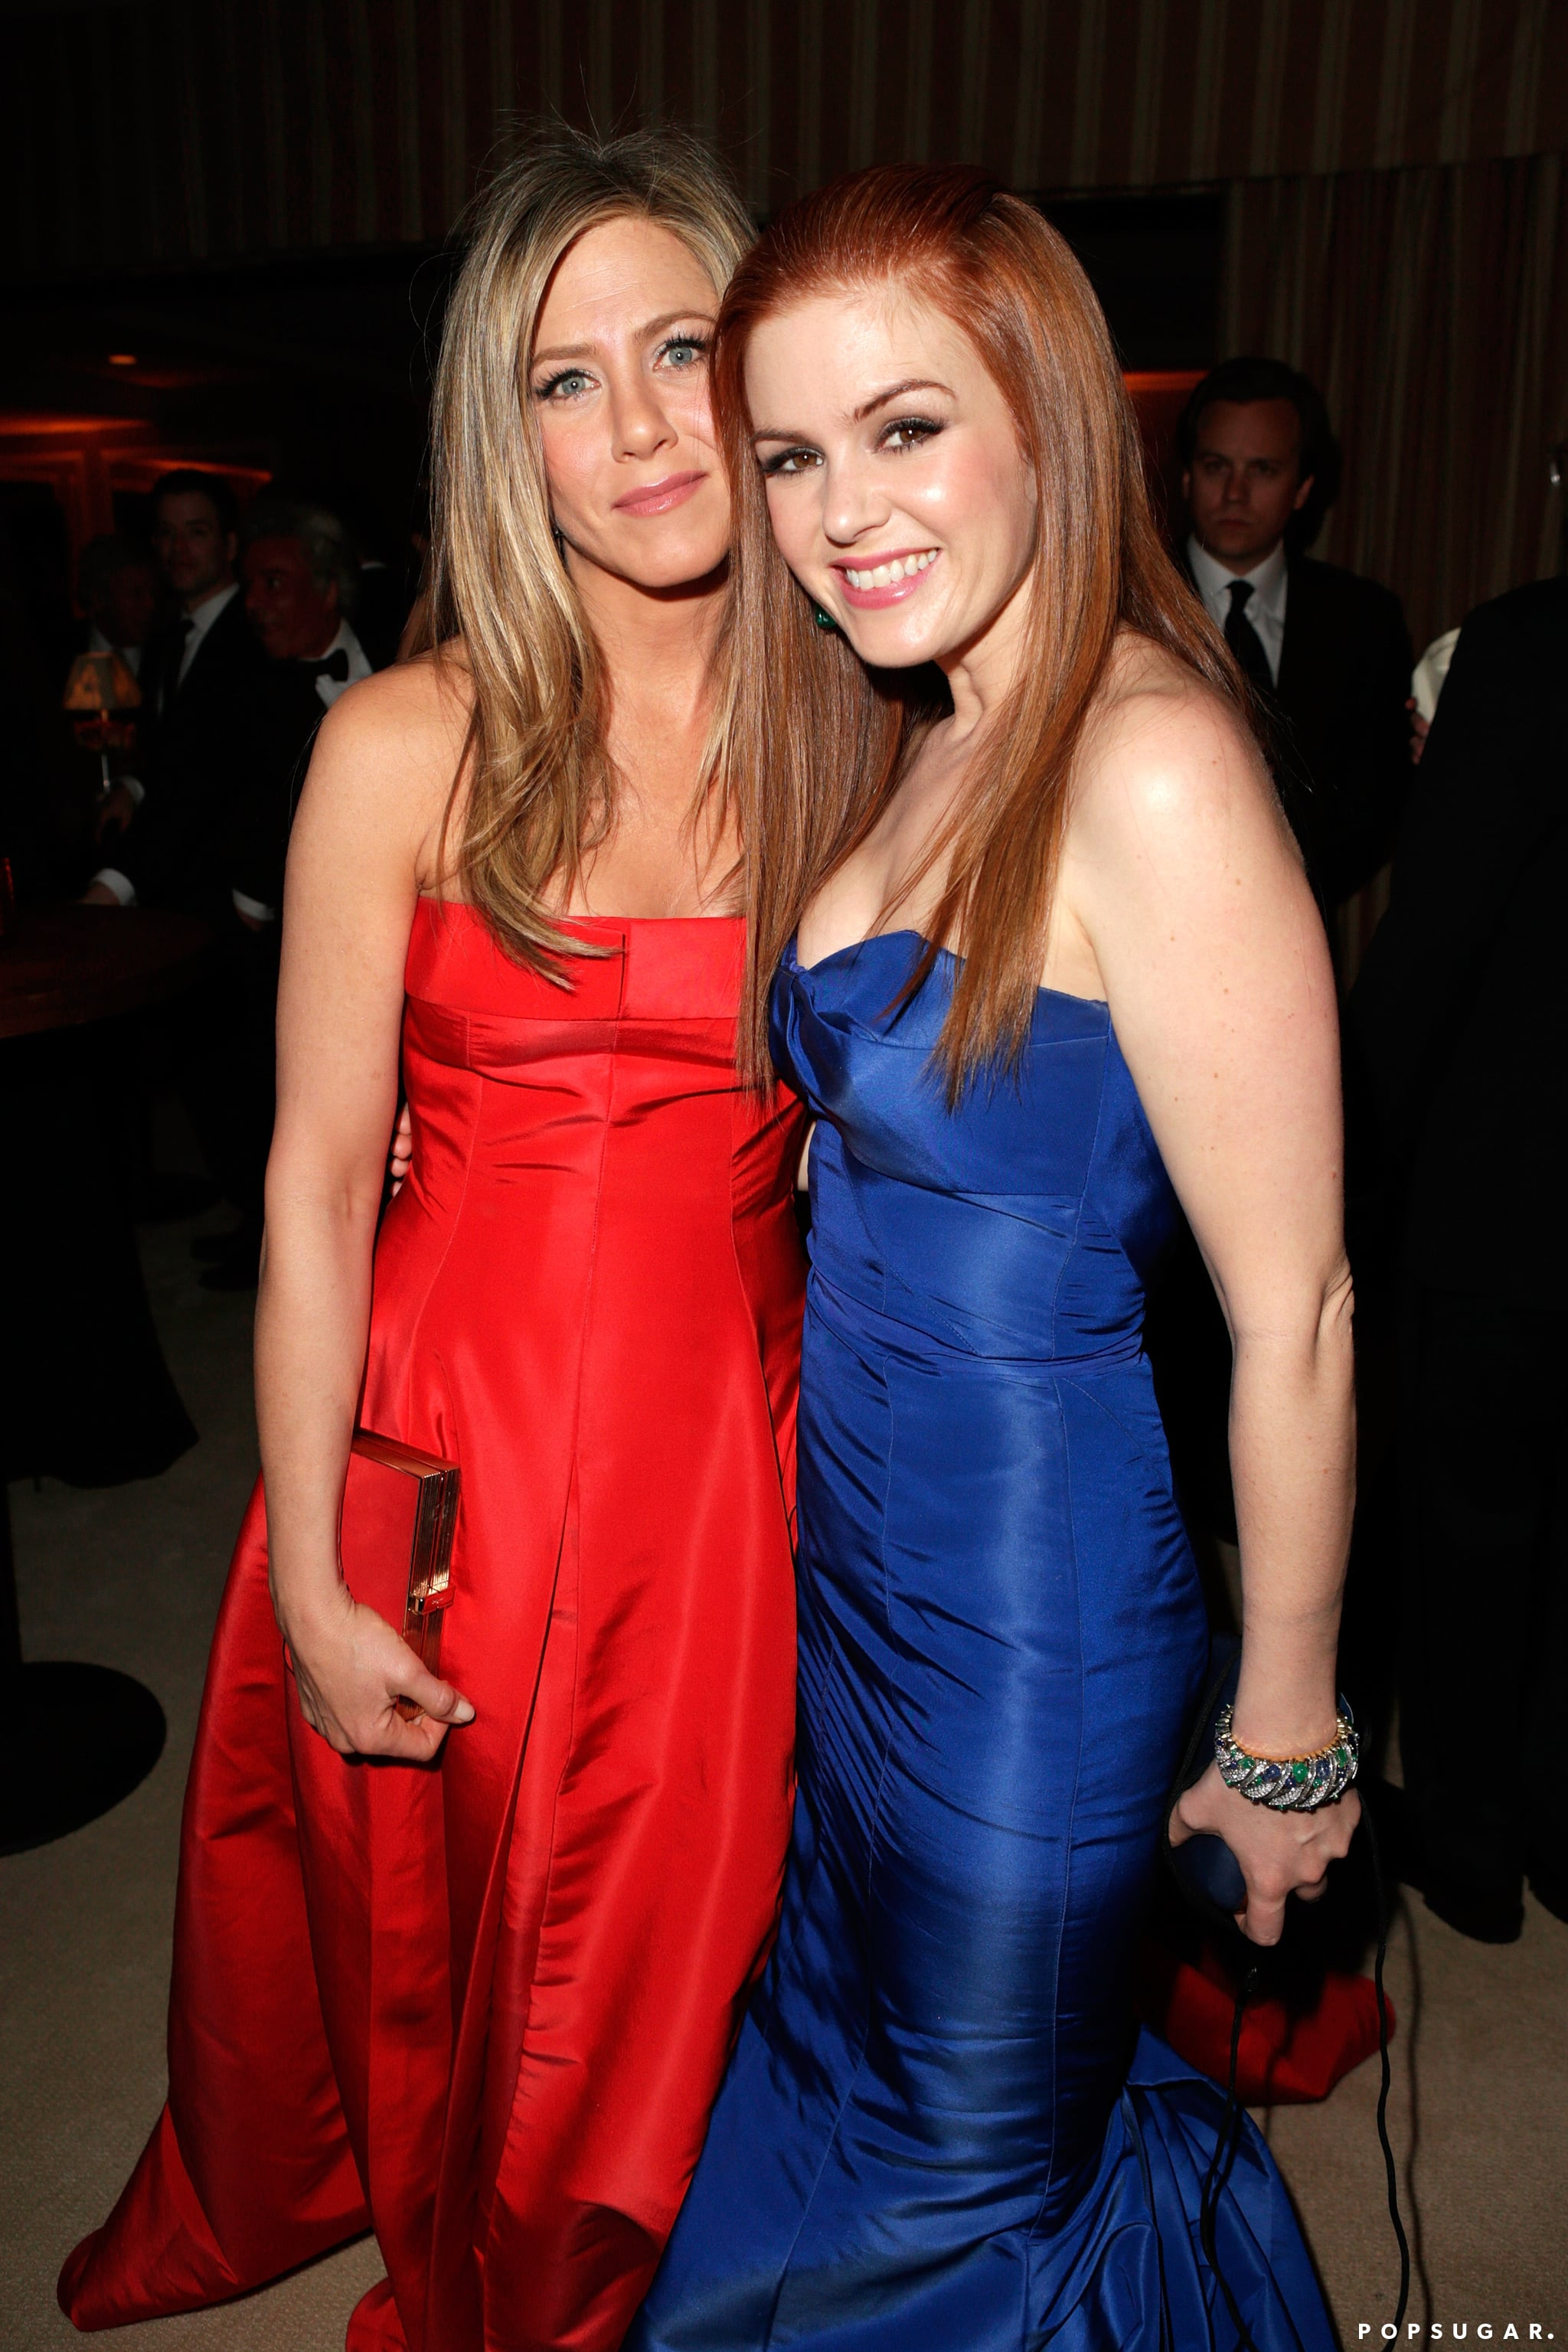 Jennifer Aniston posed with Isla Fisher at the Vanity Fair Oscars afterparty in Hollywood on Sunday night.